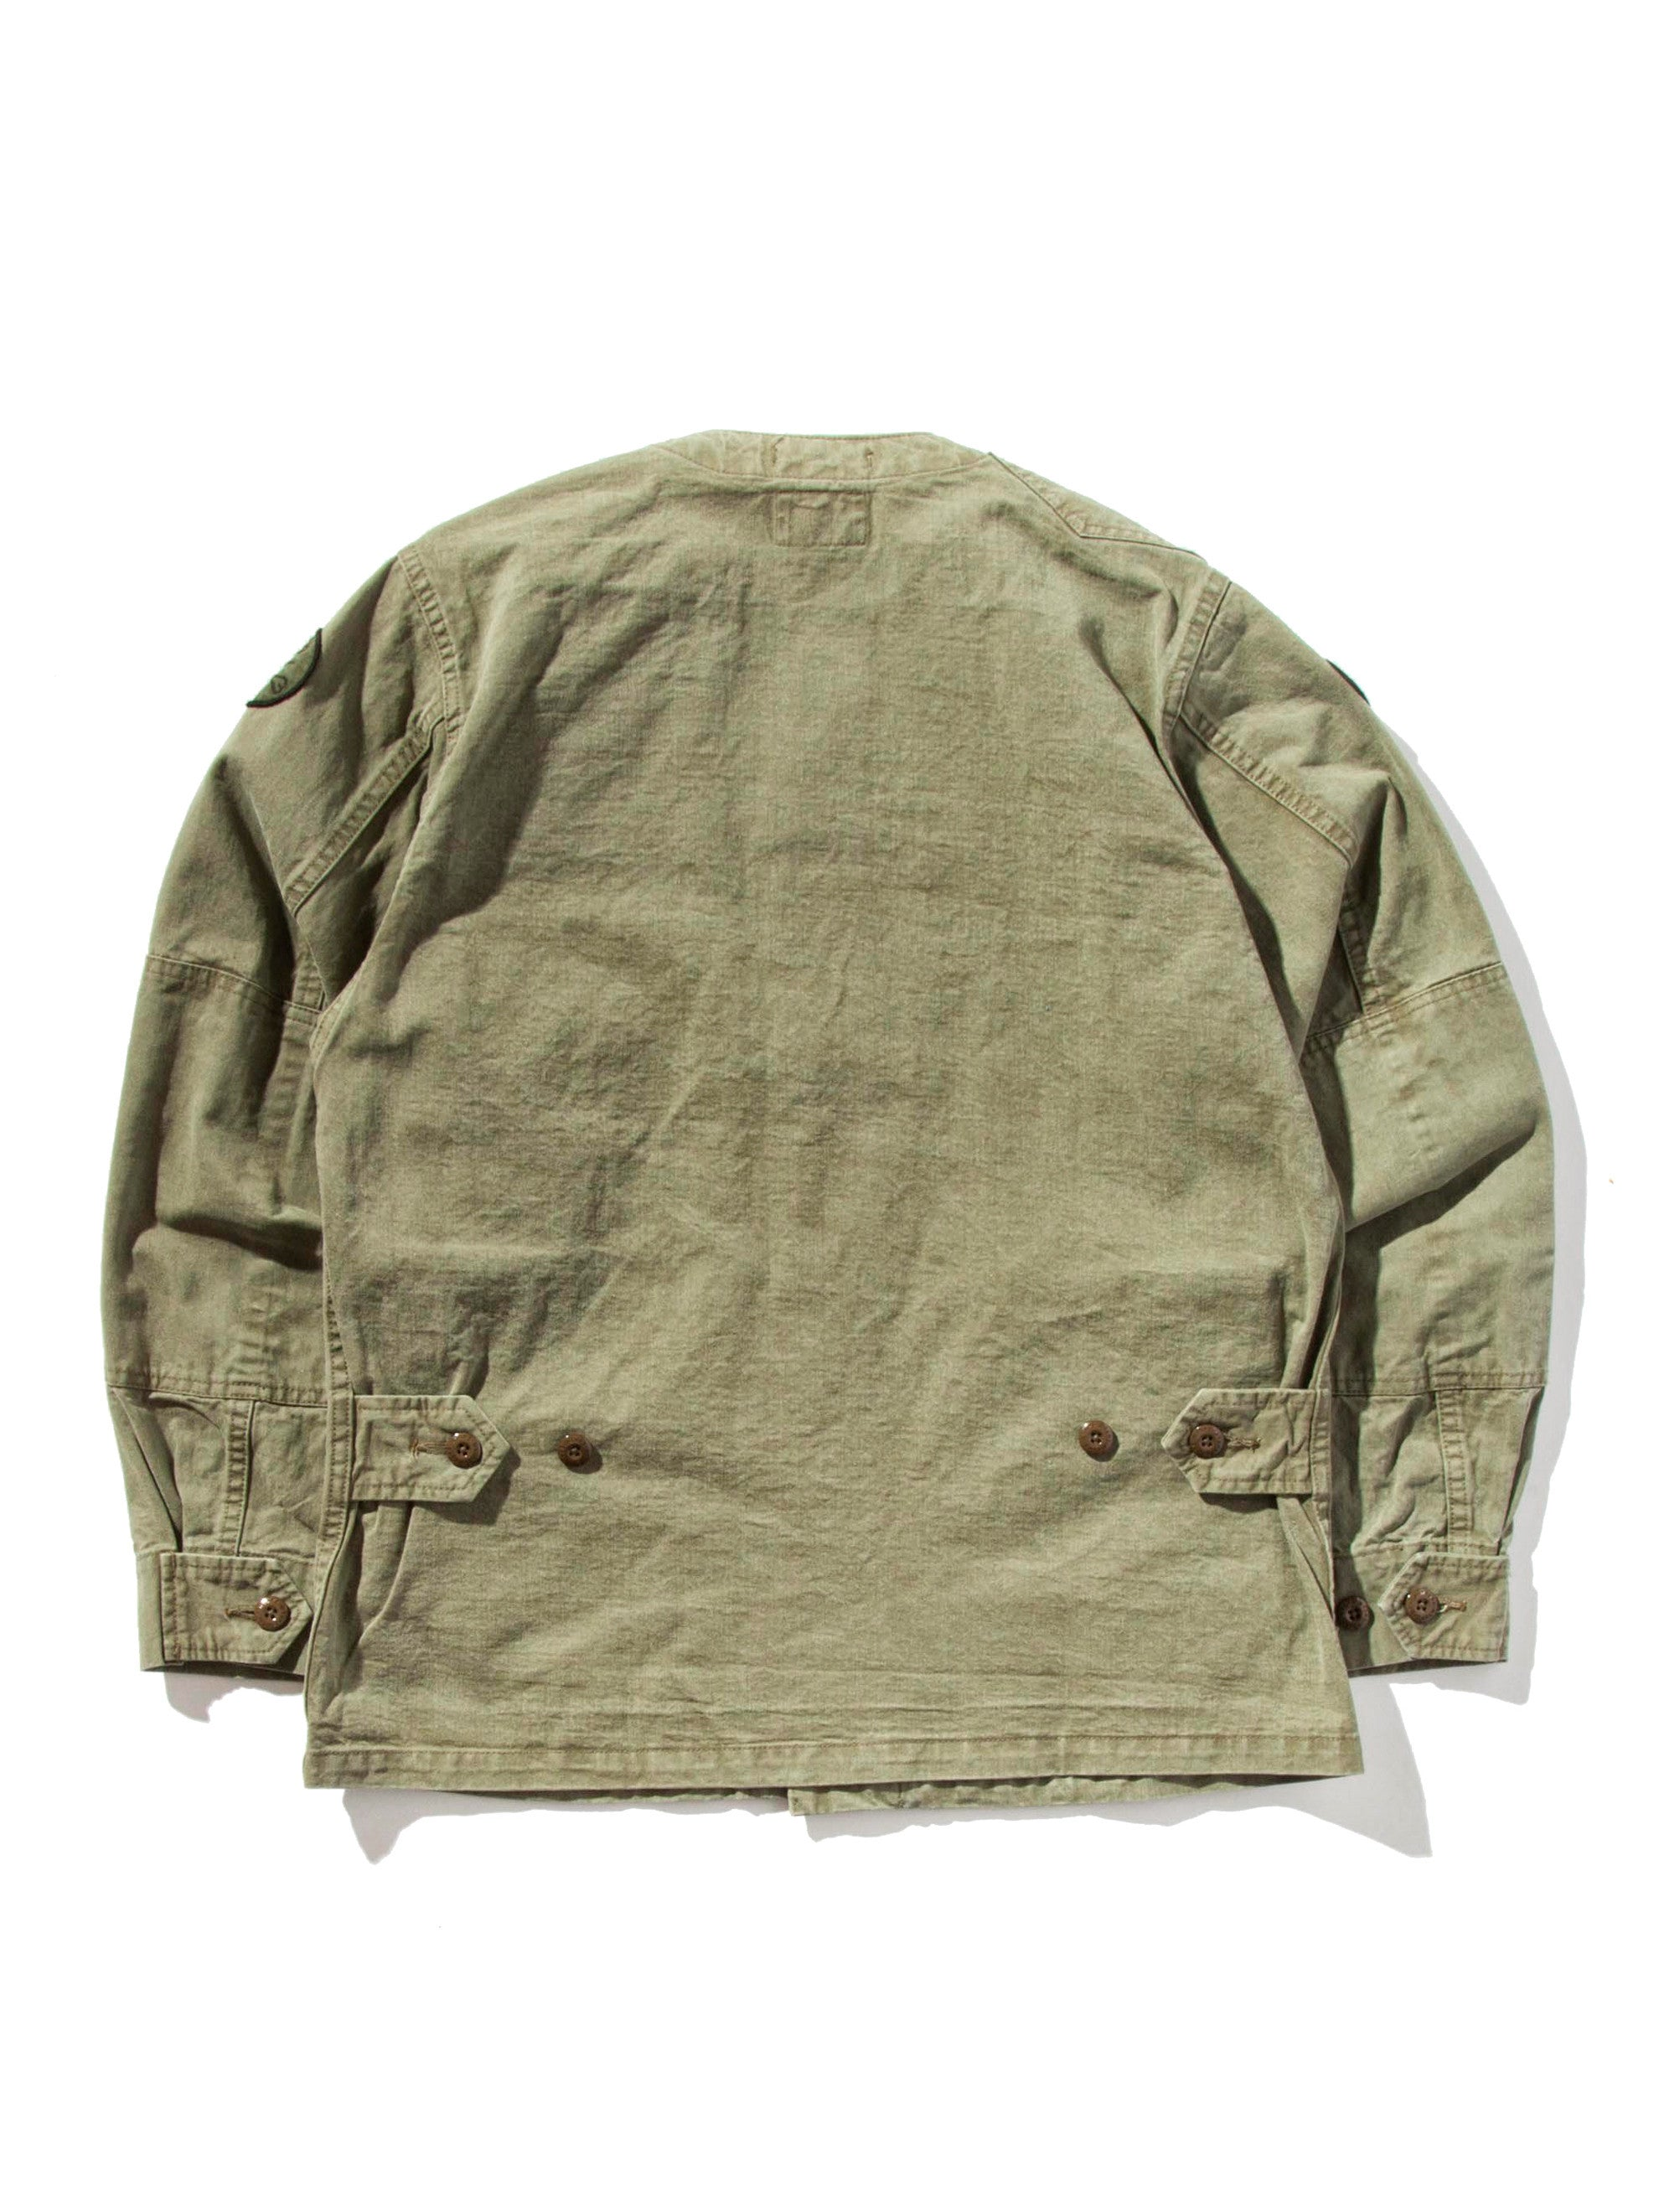 Olive Drab Scout LS 02 Shirt (Cotton Chino) 8